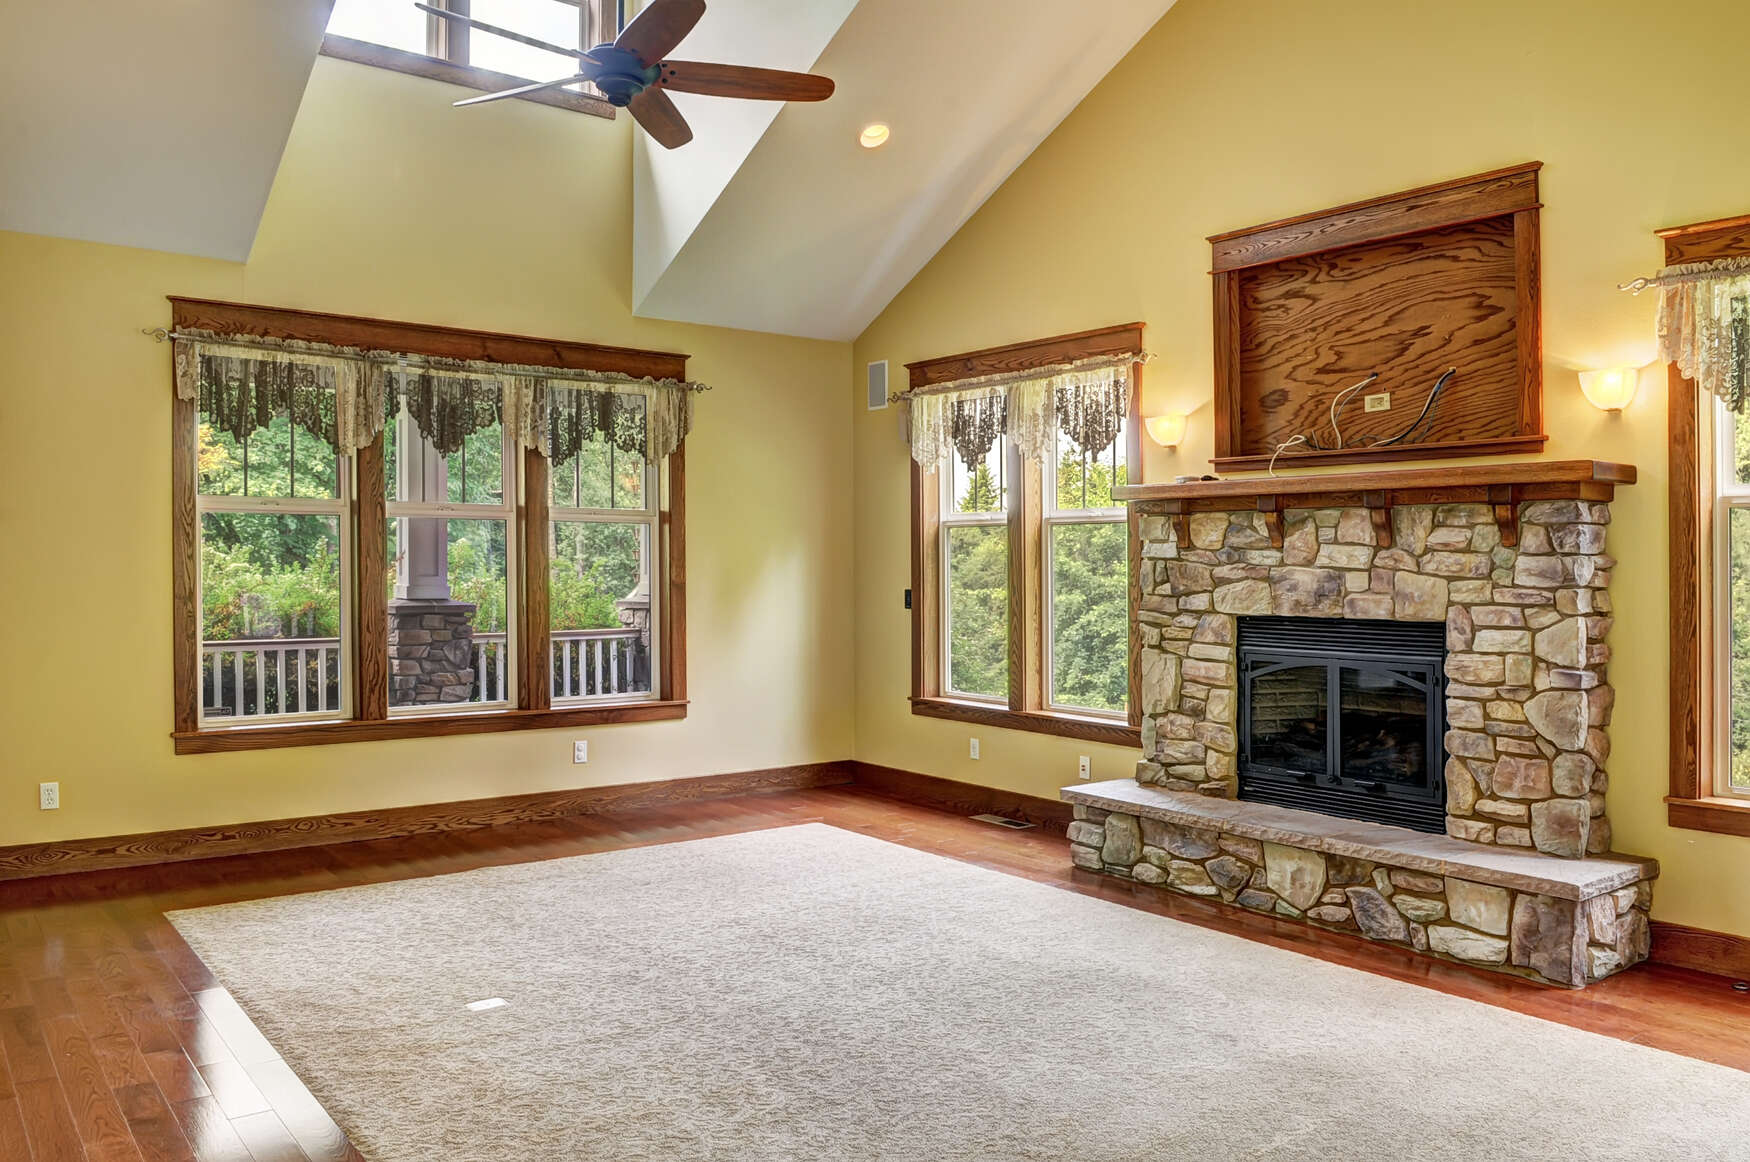 Single Family for Sale at 3131 Tall Fir Ln NW Poulsbo, Washington 98370 United States